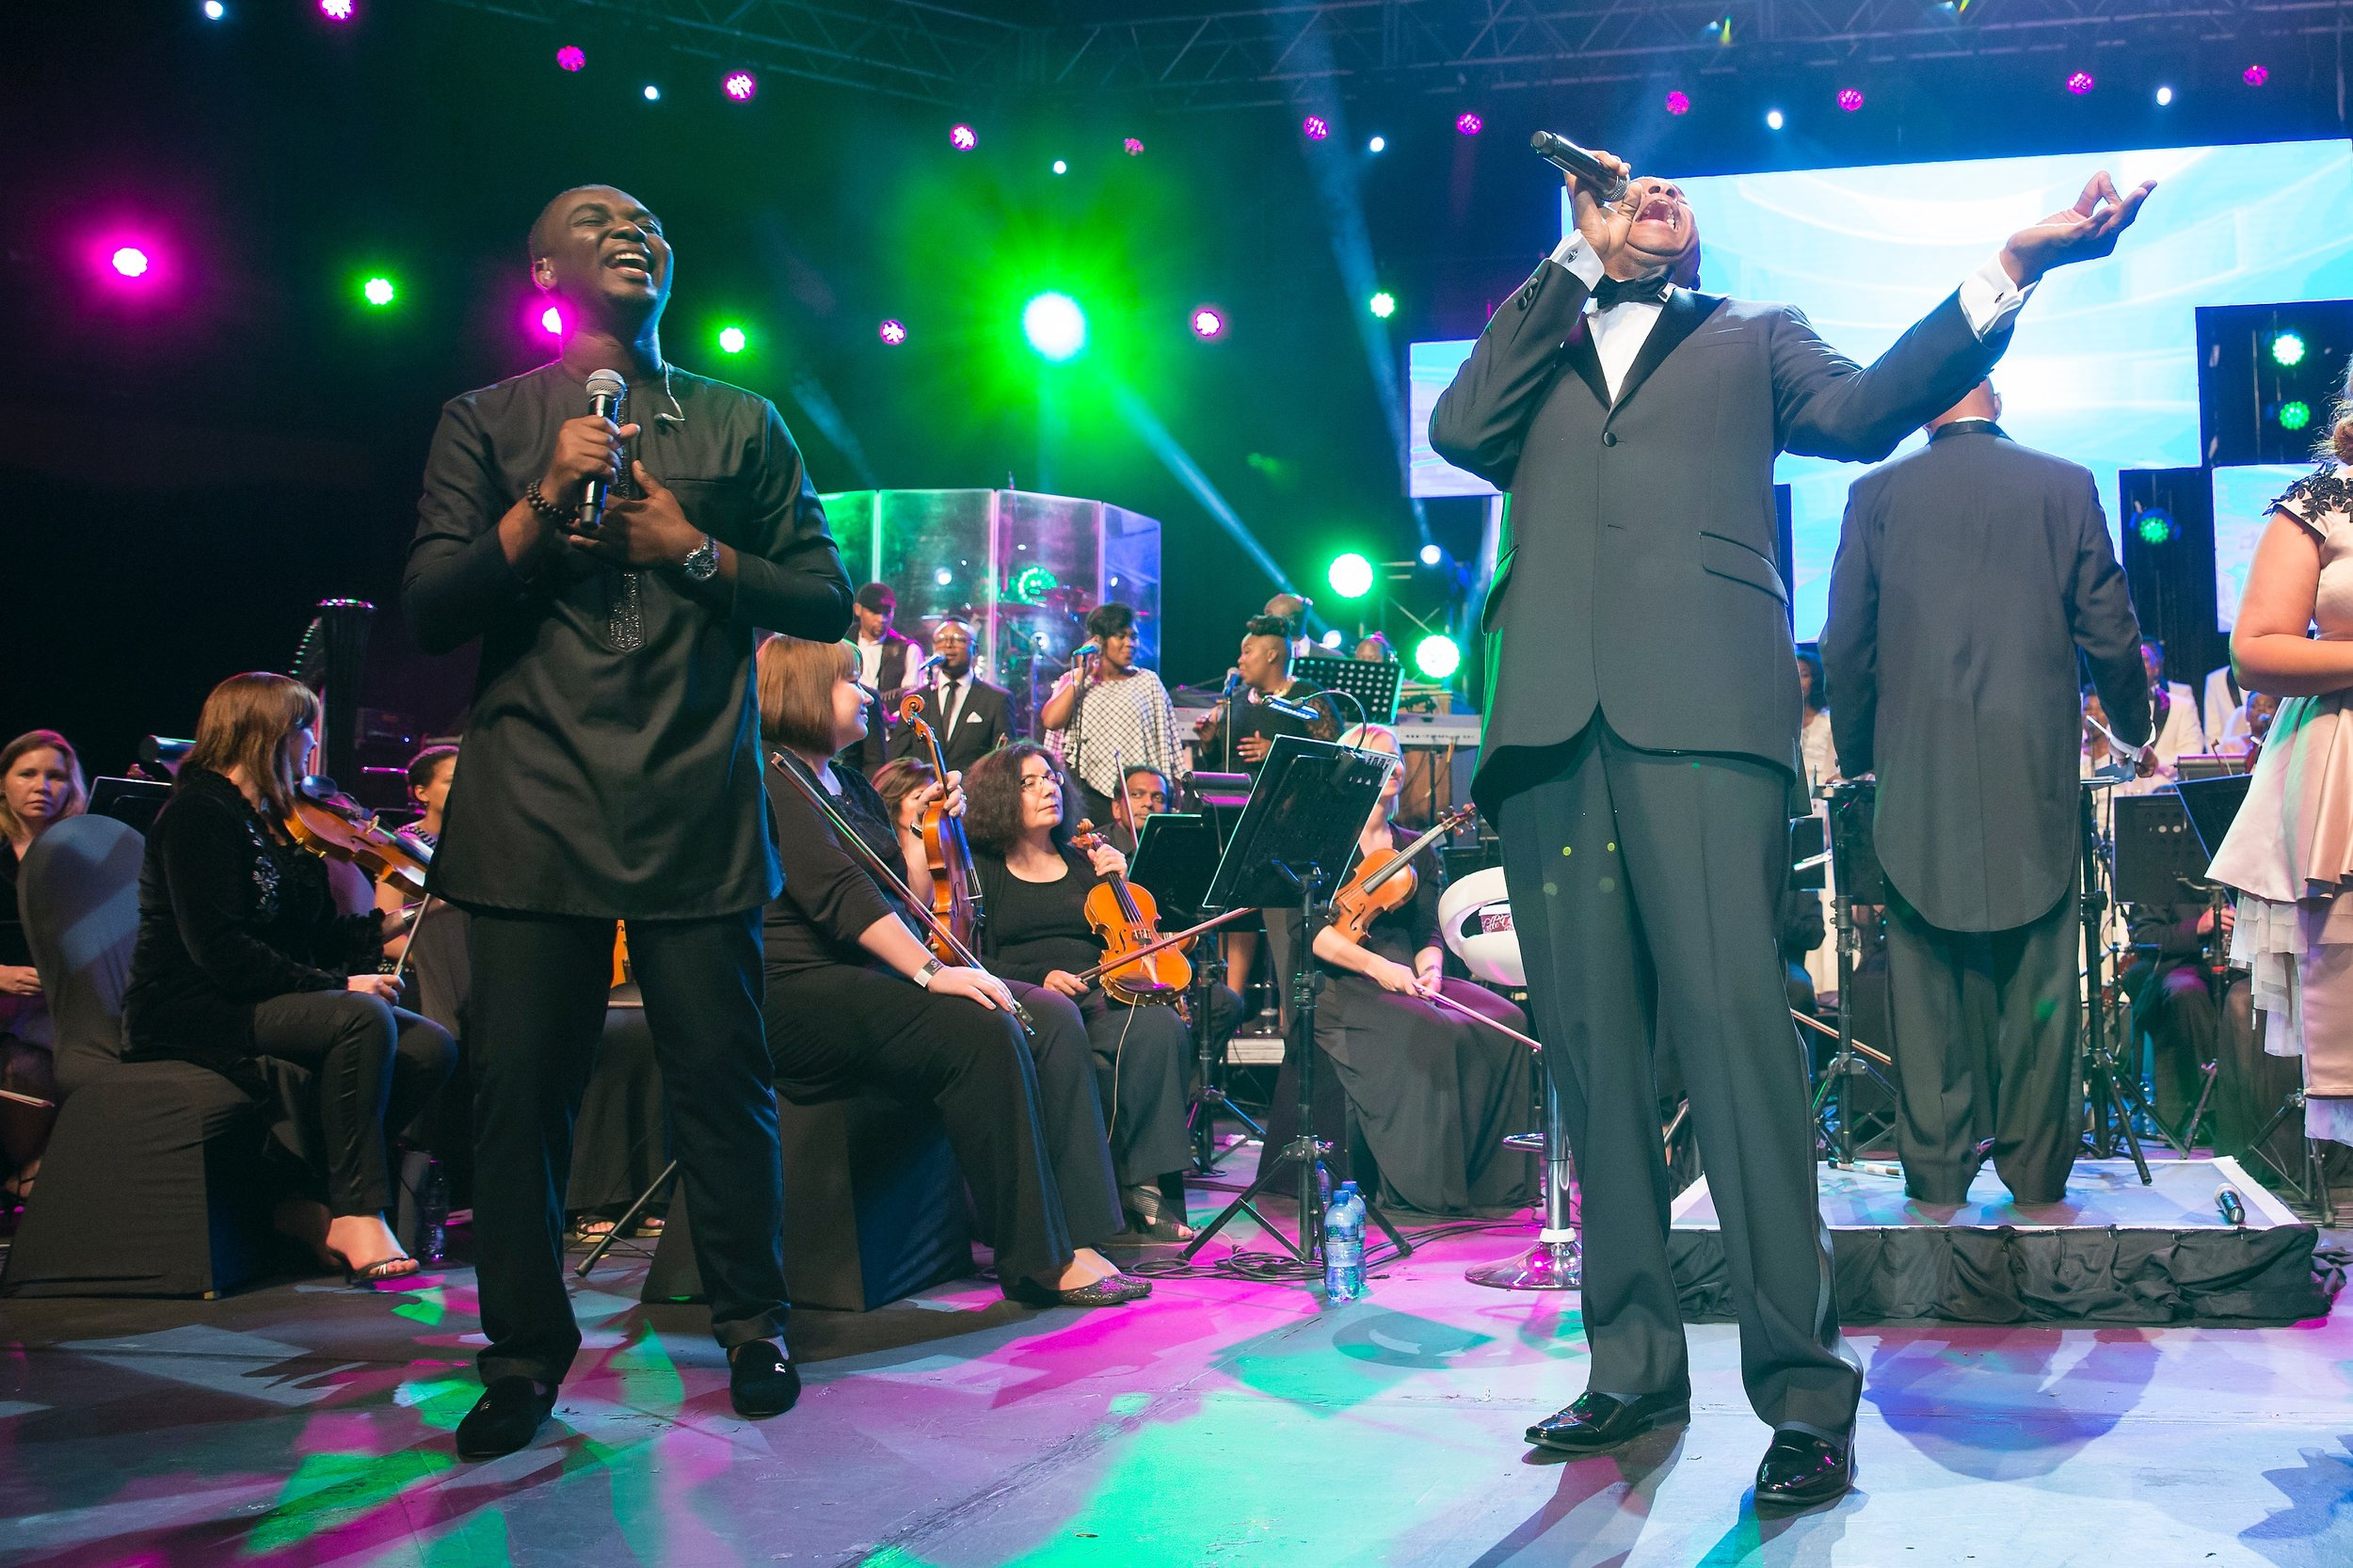 Joe performs with Donnie McClurkin in South Africa